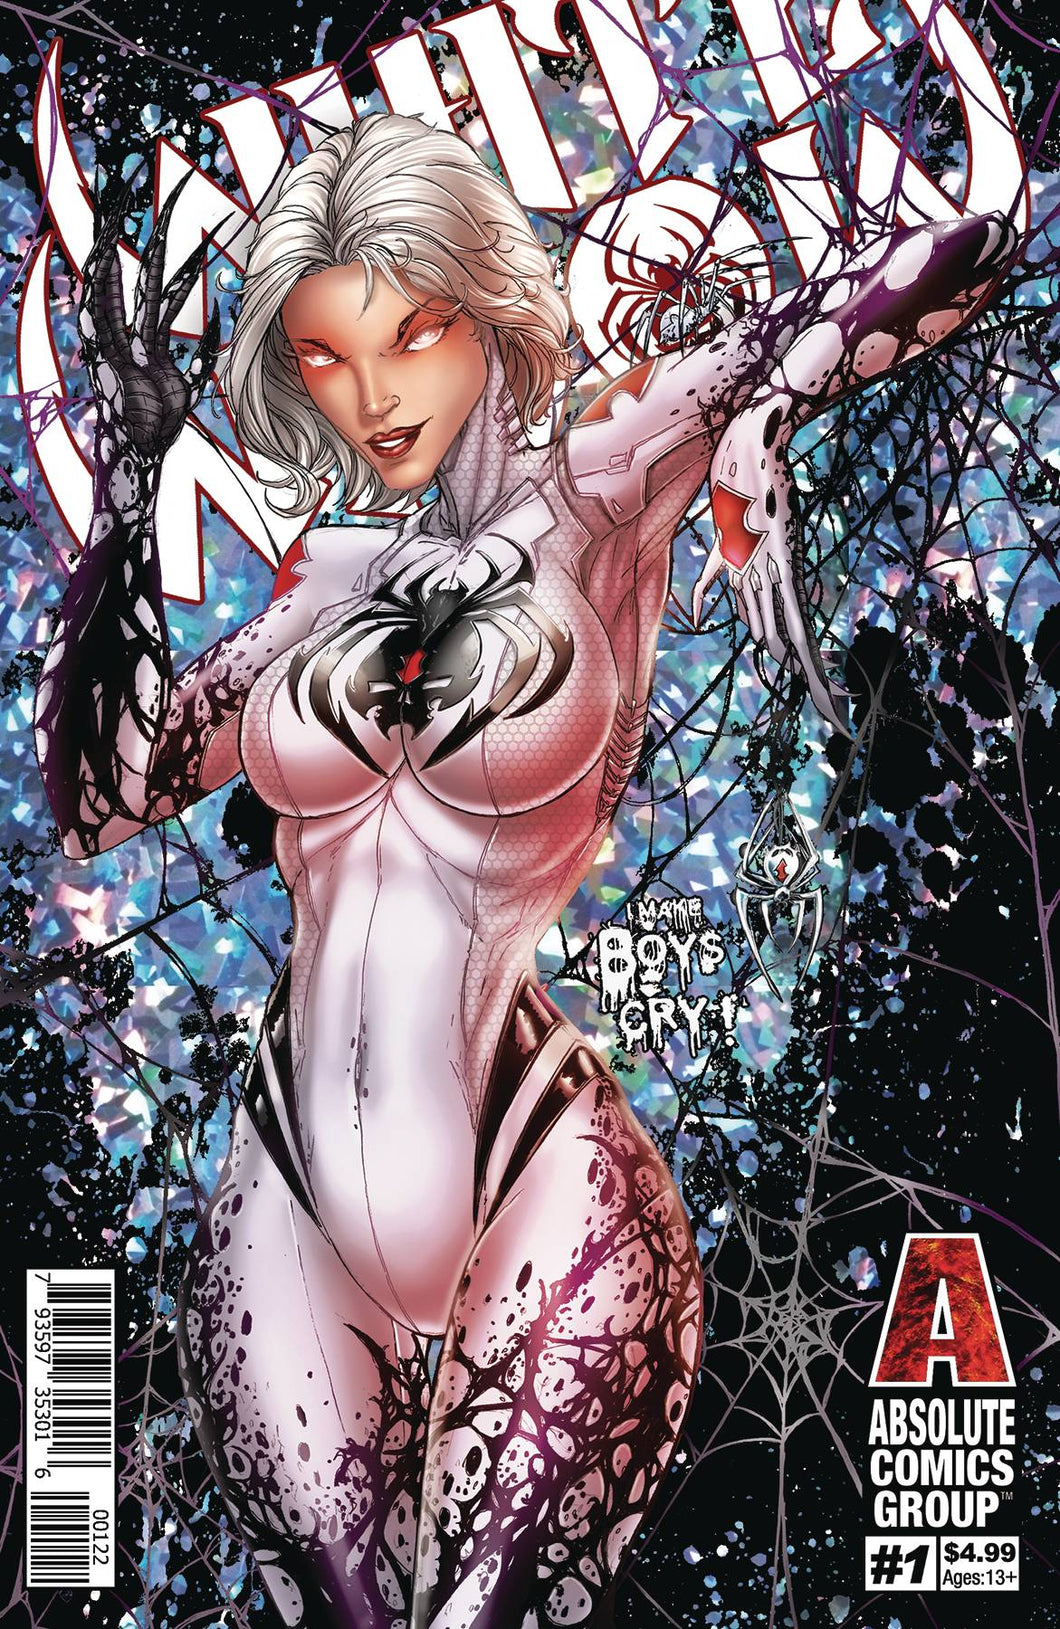 WHITE WIDOW #1 2ND PTG CVR B FOIL COVER 04/24/19